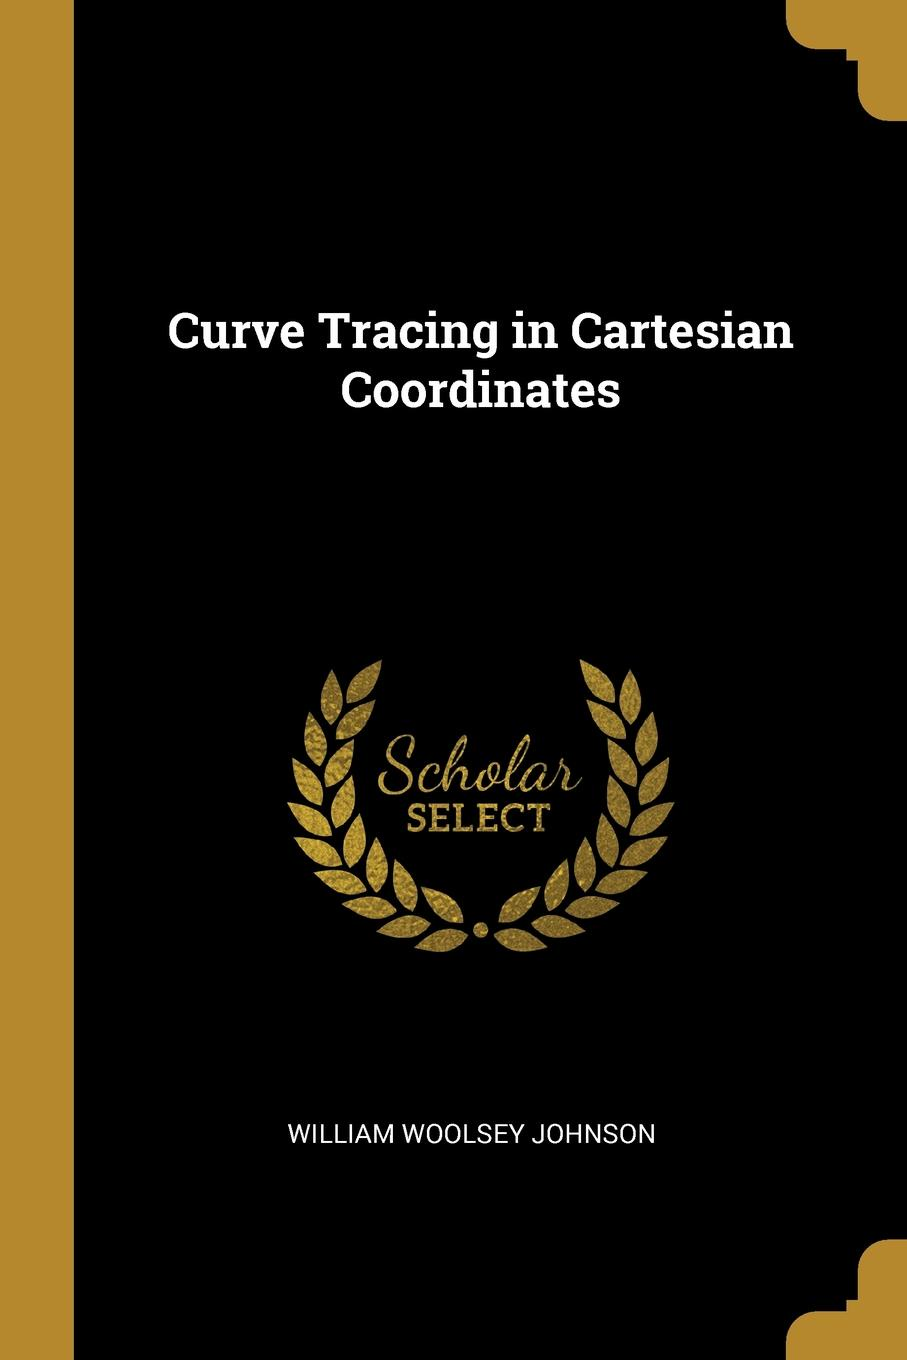 William Woolsey Johnson. Curve Tracing in Cartesian Coordinates